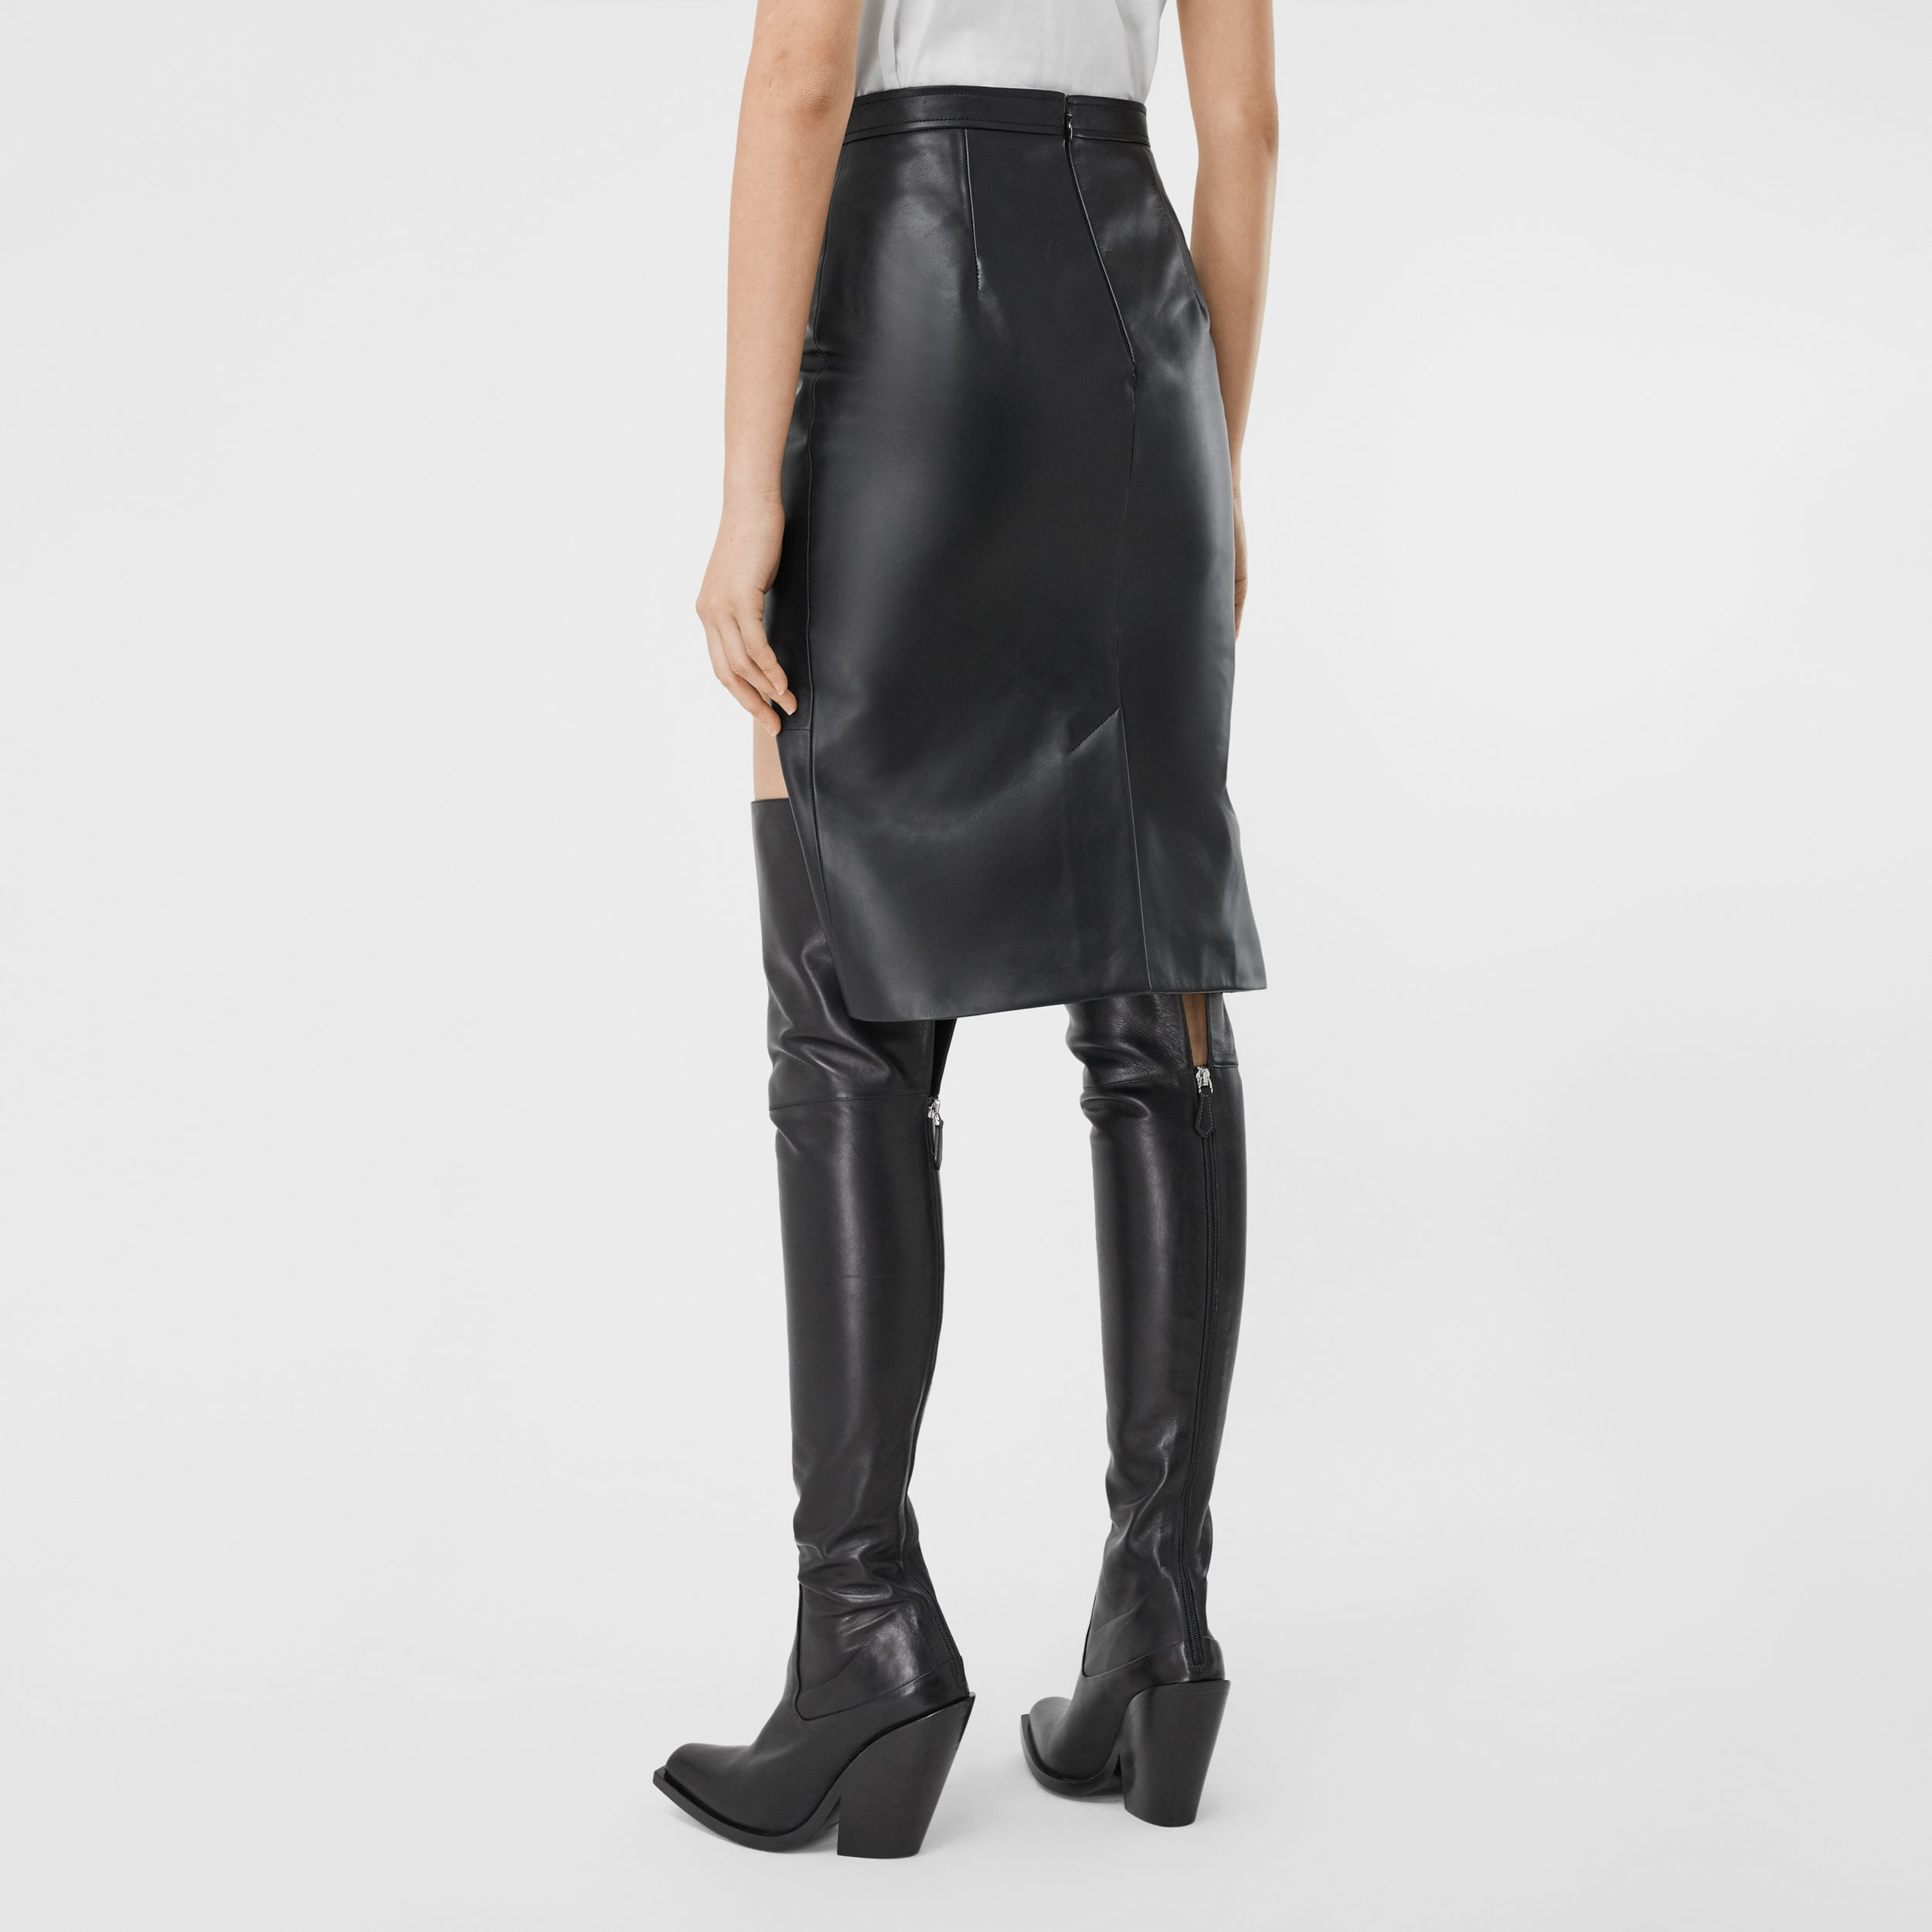 Leather Step-through Pencil Skirt in Black - Women | Burberry - 2